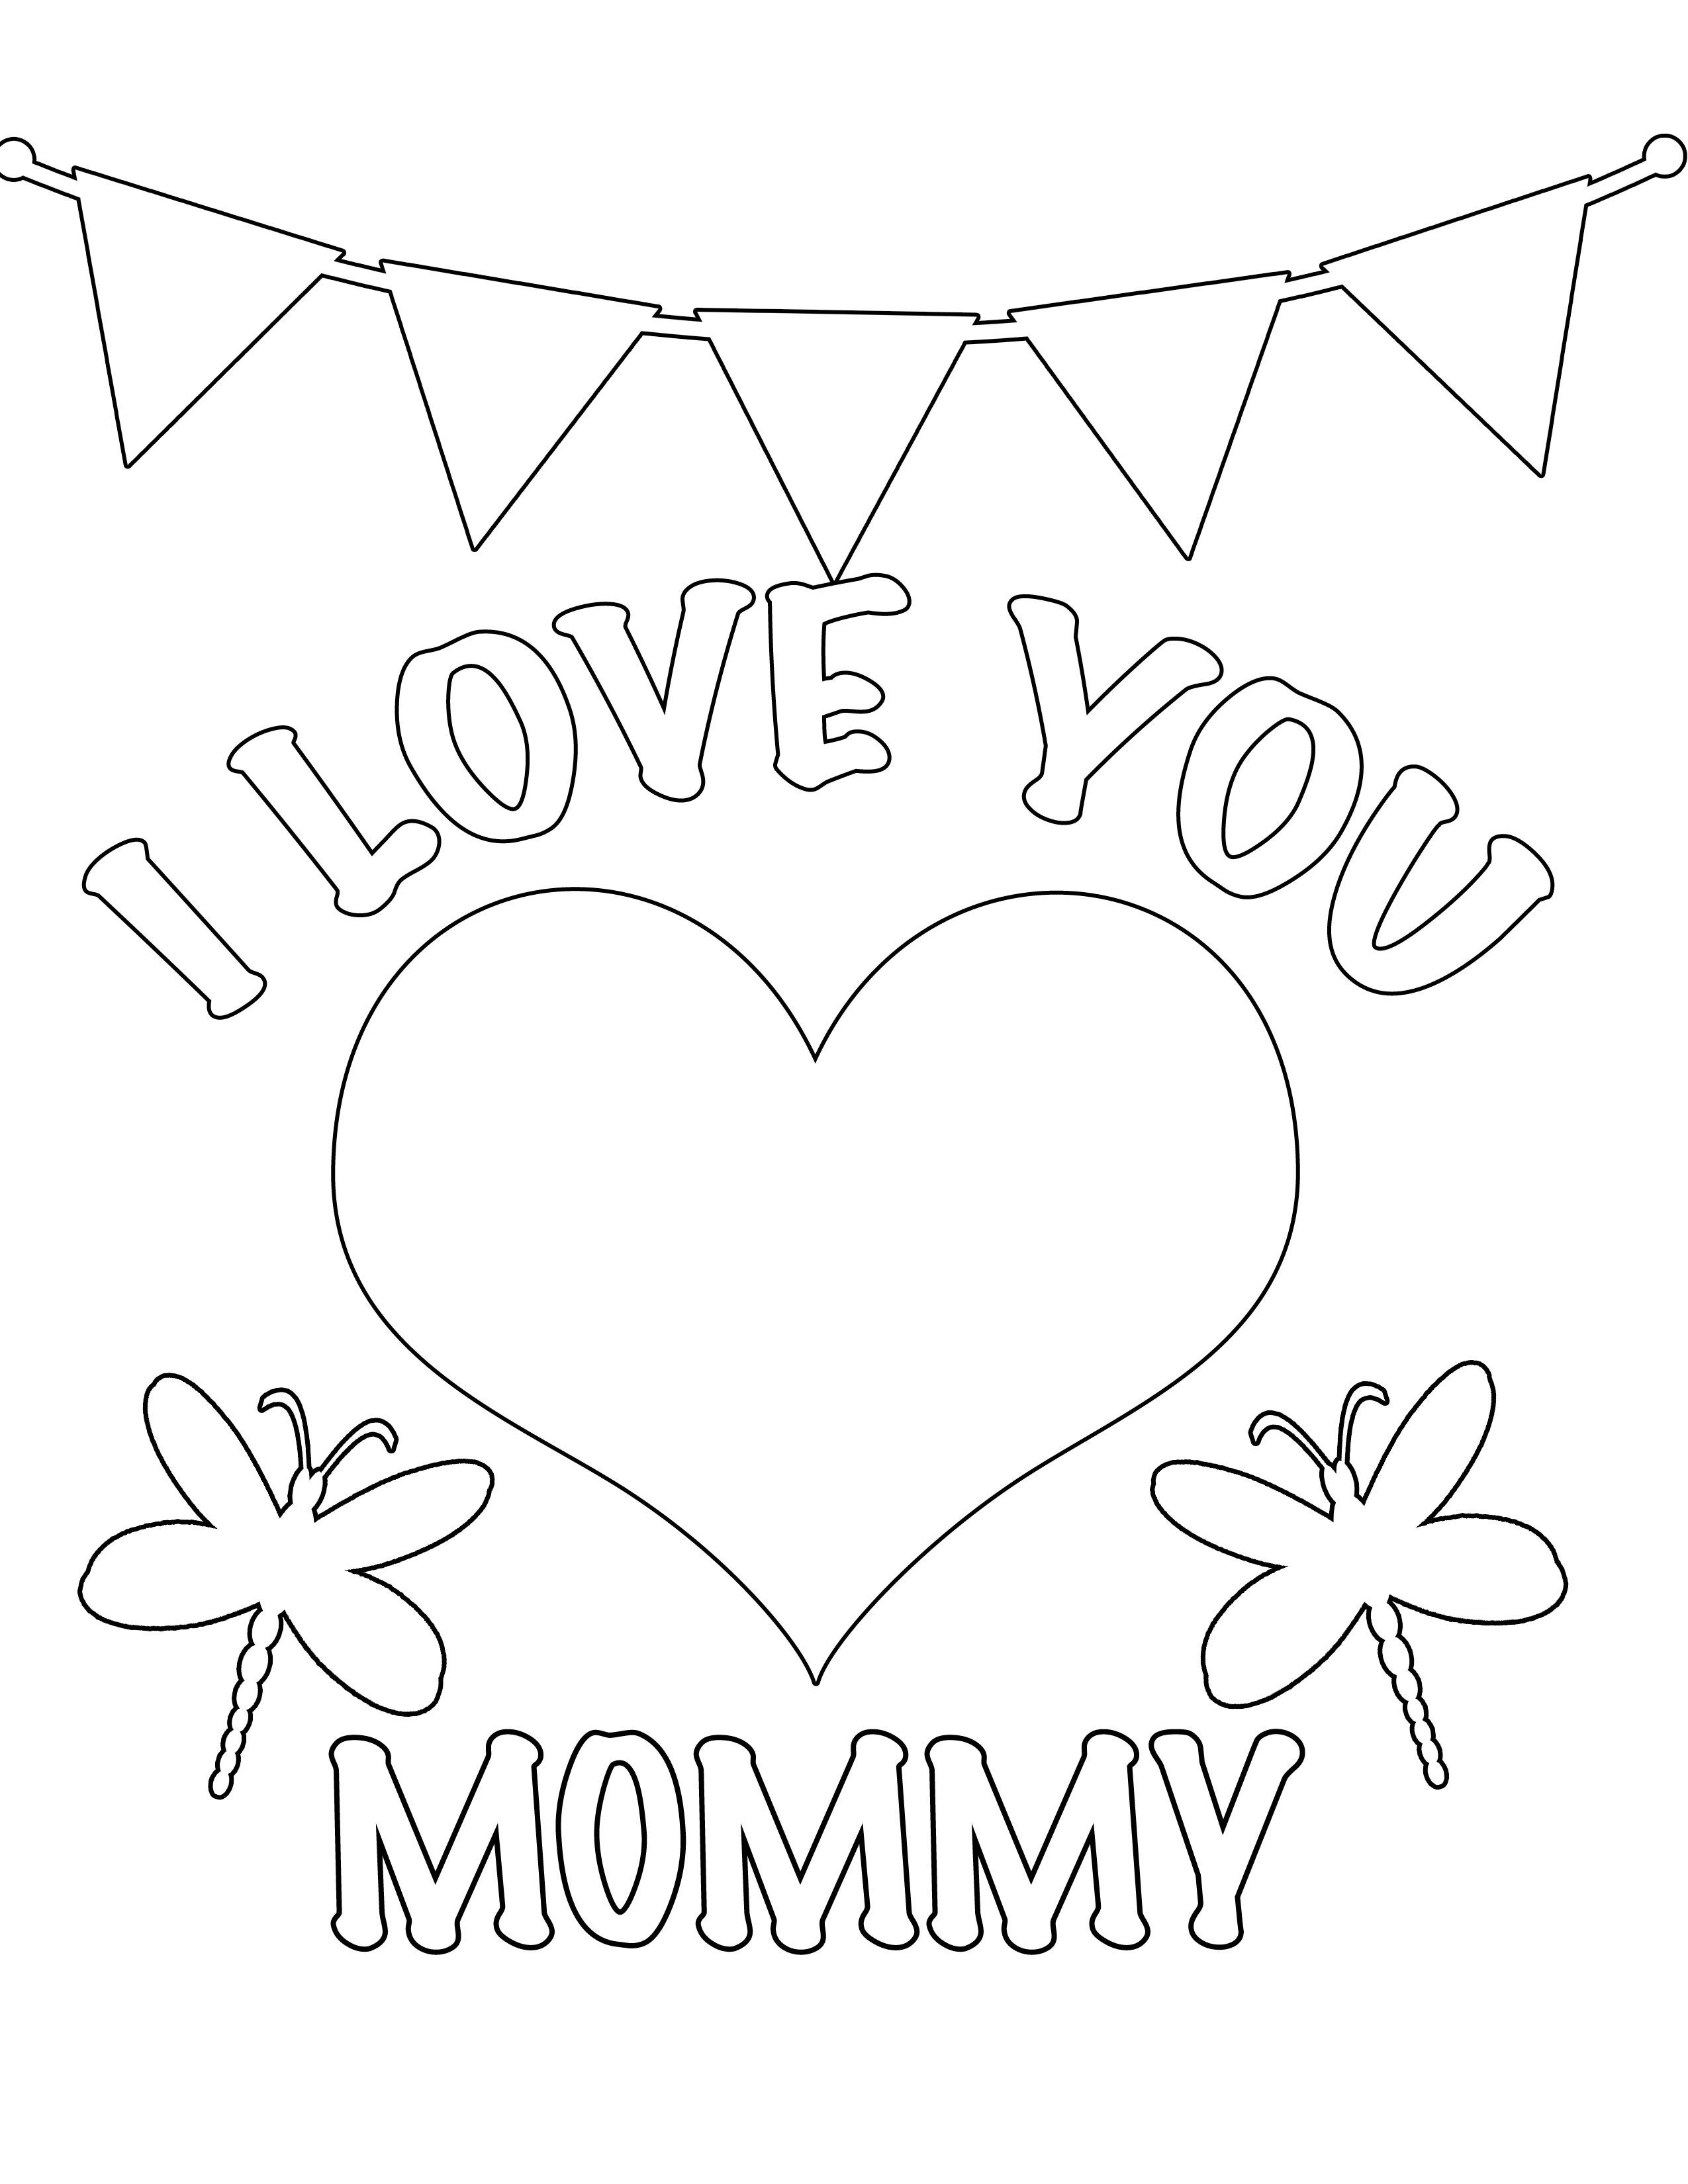 Mom And Dad Coloring Pages Gallery Mom Coloring Pages Valentine Coloring Pages Valentines Day Coloring Page